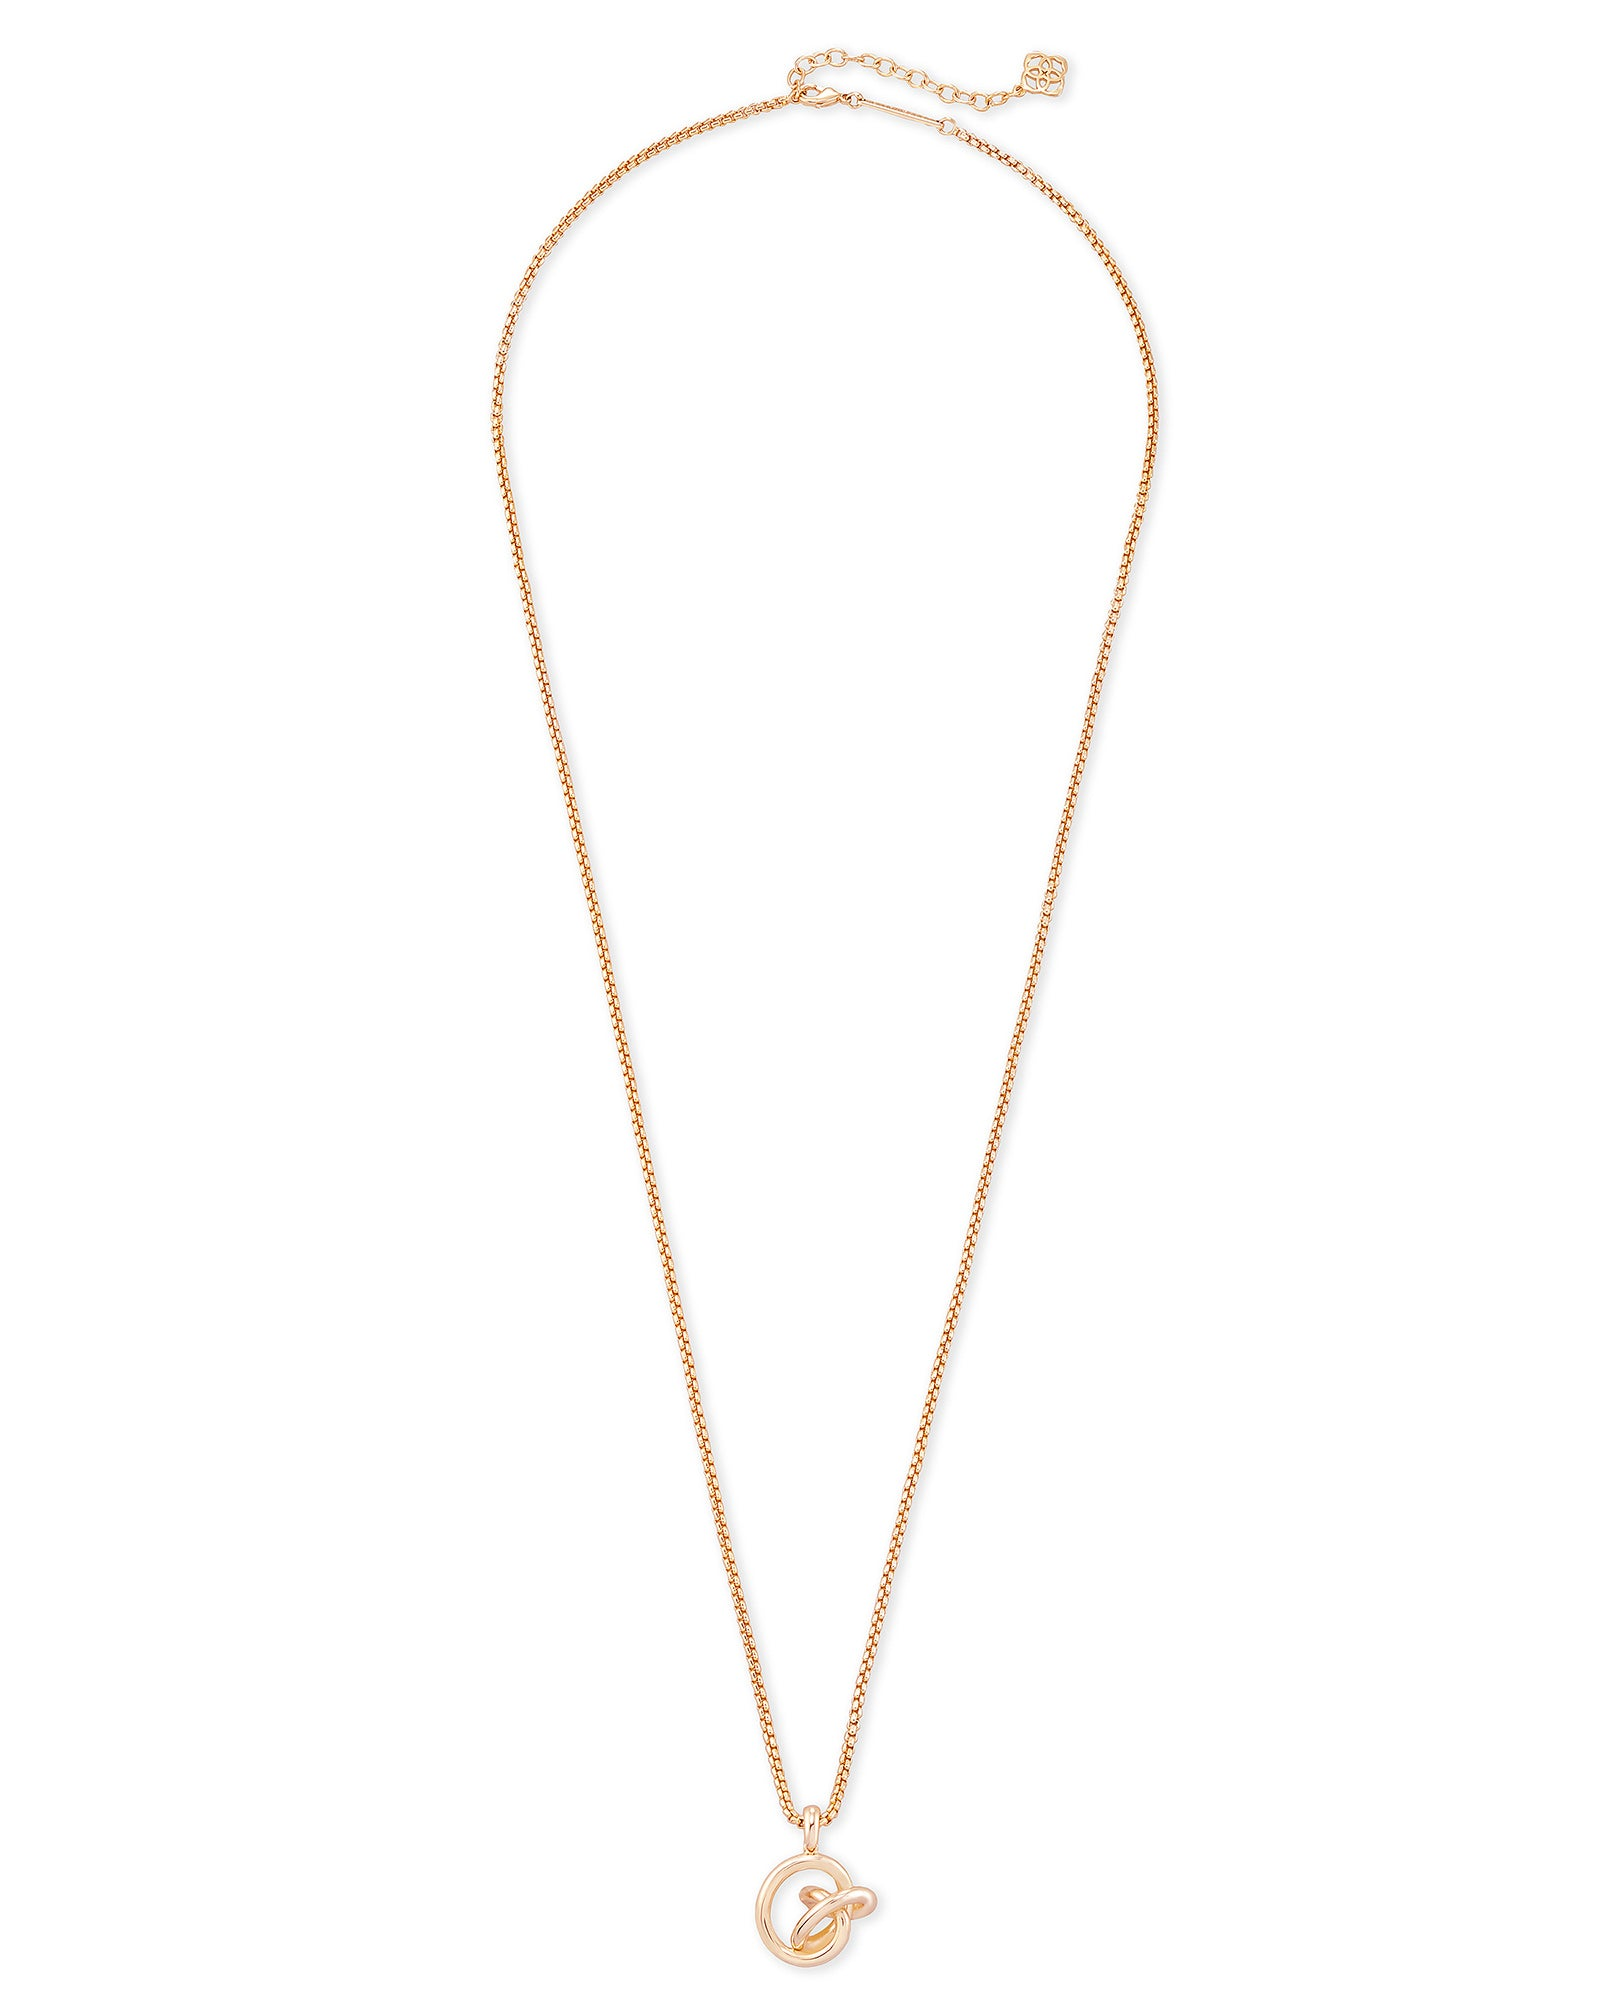 Presleigh Long Pendant Necklace in Rose Gold